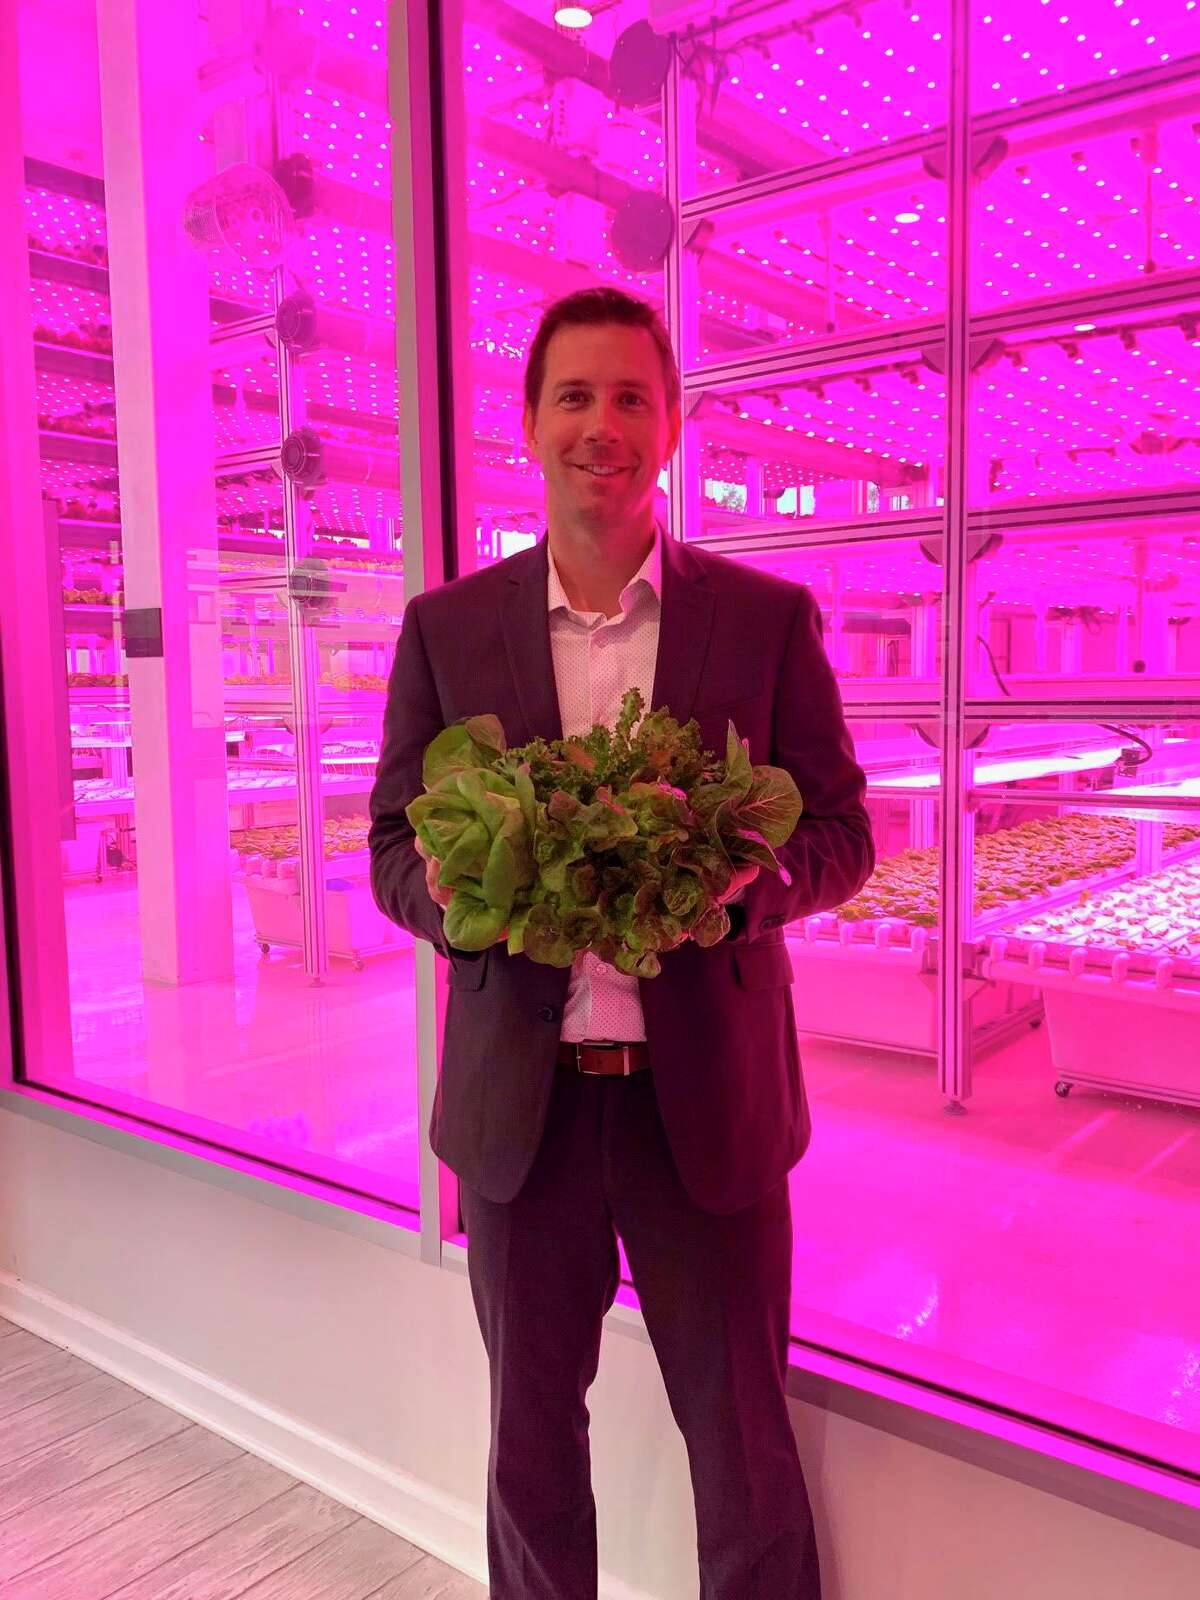 Daniel Malechuk is chief executive officer of Kalera, a technology-driven, vertical farming company that plans to open a Houston facility in 2021. Kalera will be able to grow 5 million pounds of lettuce - the equivalent of 15 million heads of lettuce - annually. Malechuk holds a head of lettuce at HyCube, Kalera's vertical farm on-site at the Marriott Orlando World Center.